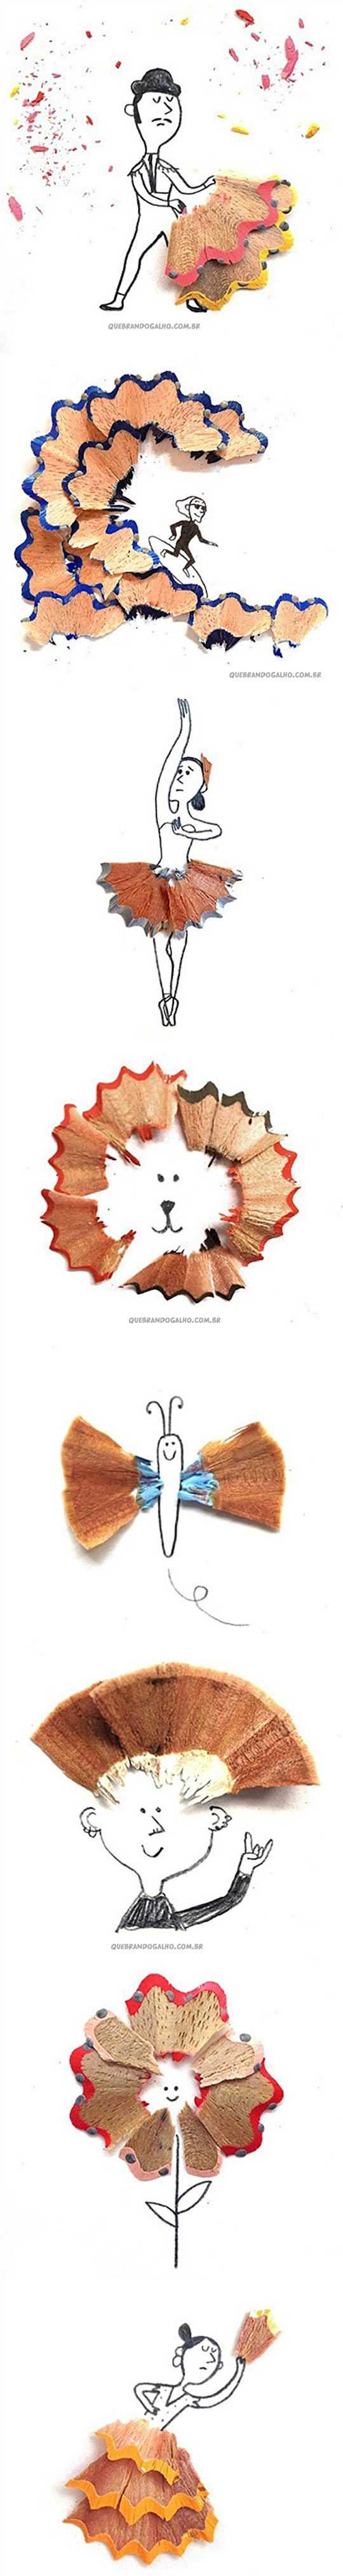 Pencil shavings art.